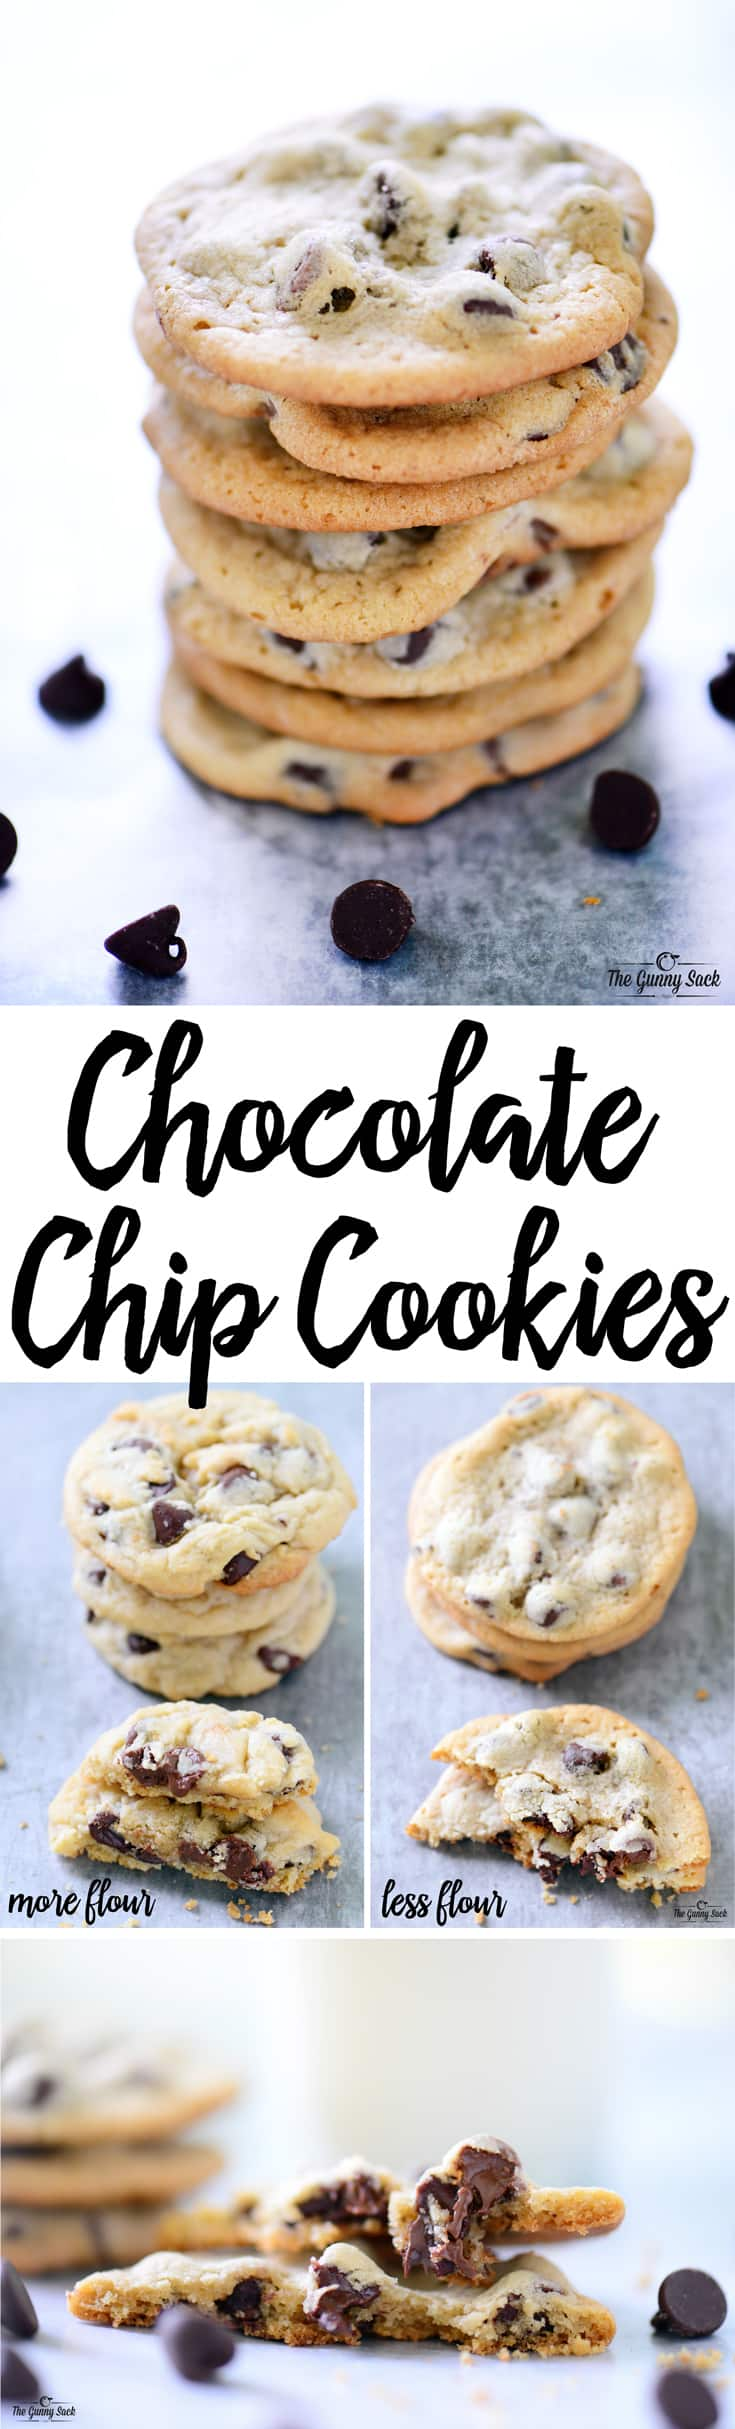 Our FAVORITE Chocolate Chip Cookies are chewy, gooey and slightly crisp on the outside.